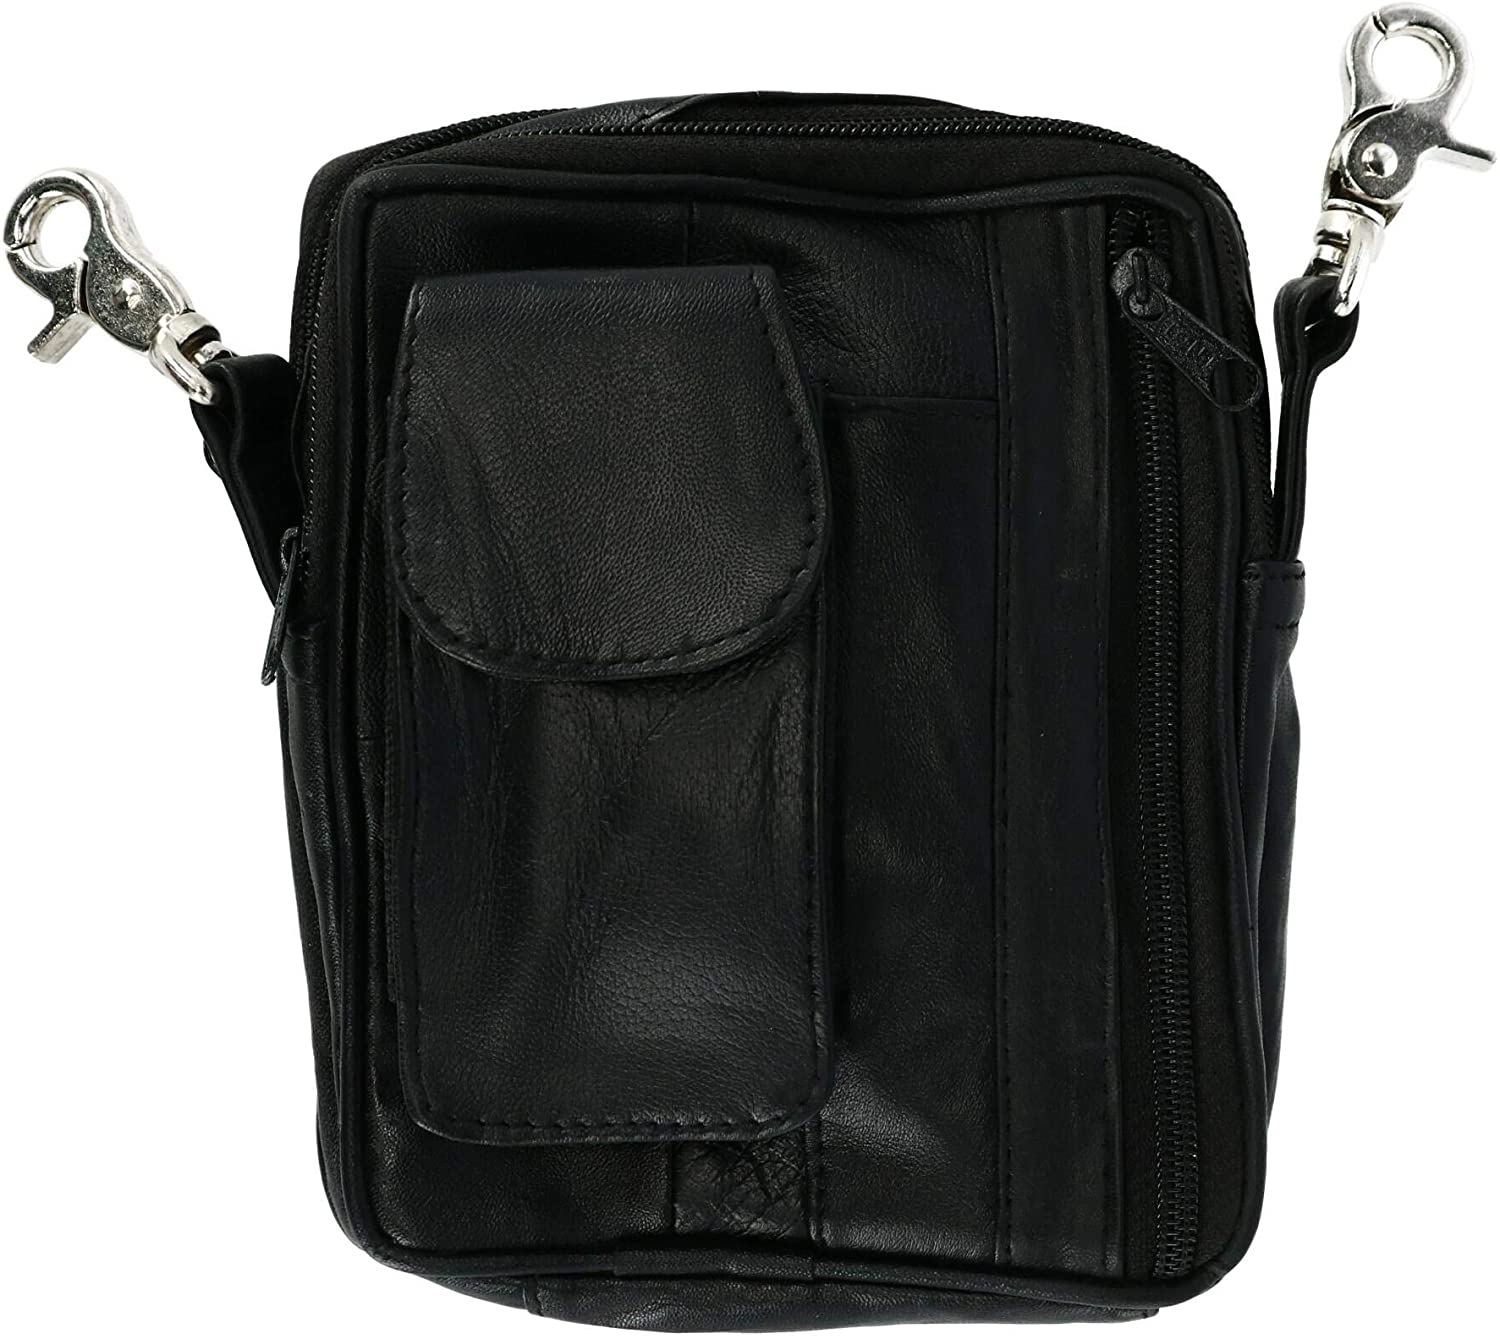 CTM Leather Multi Pocket Biker Bag with Detachable Strap, Black